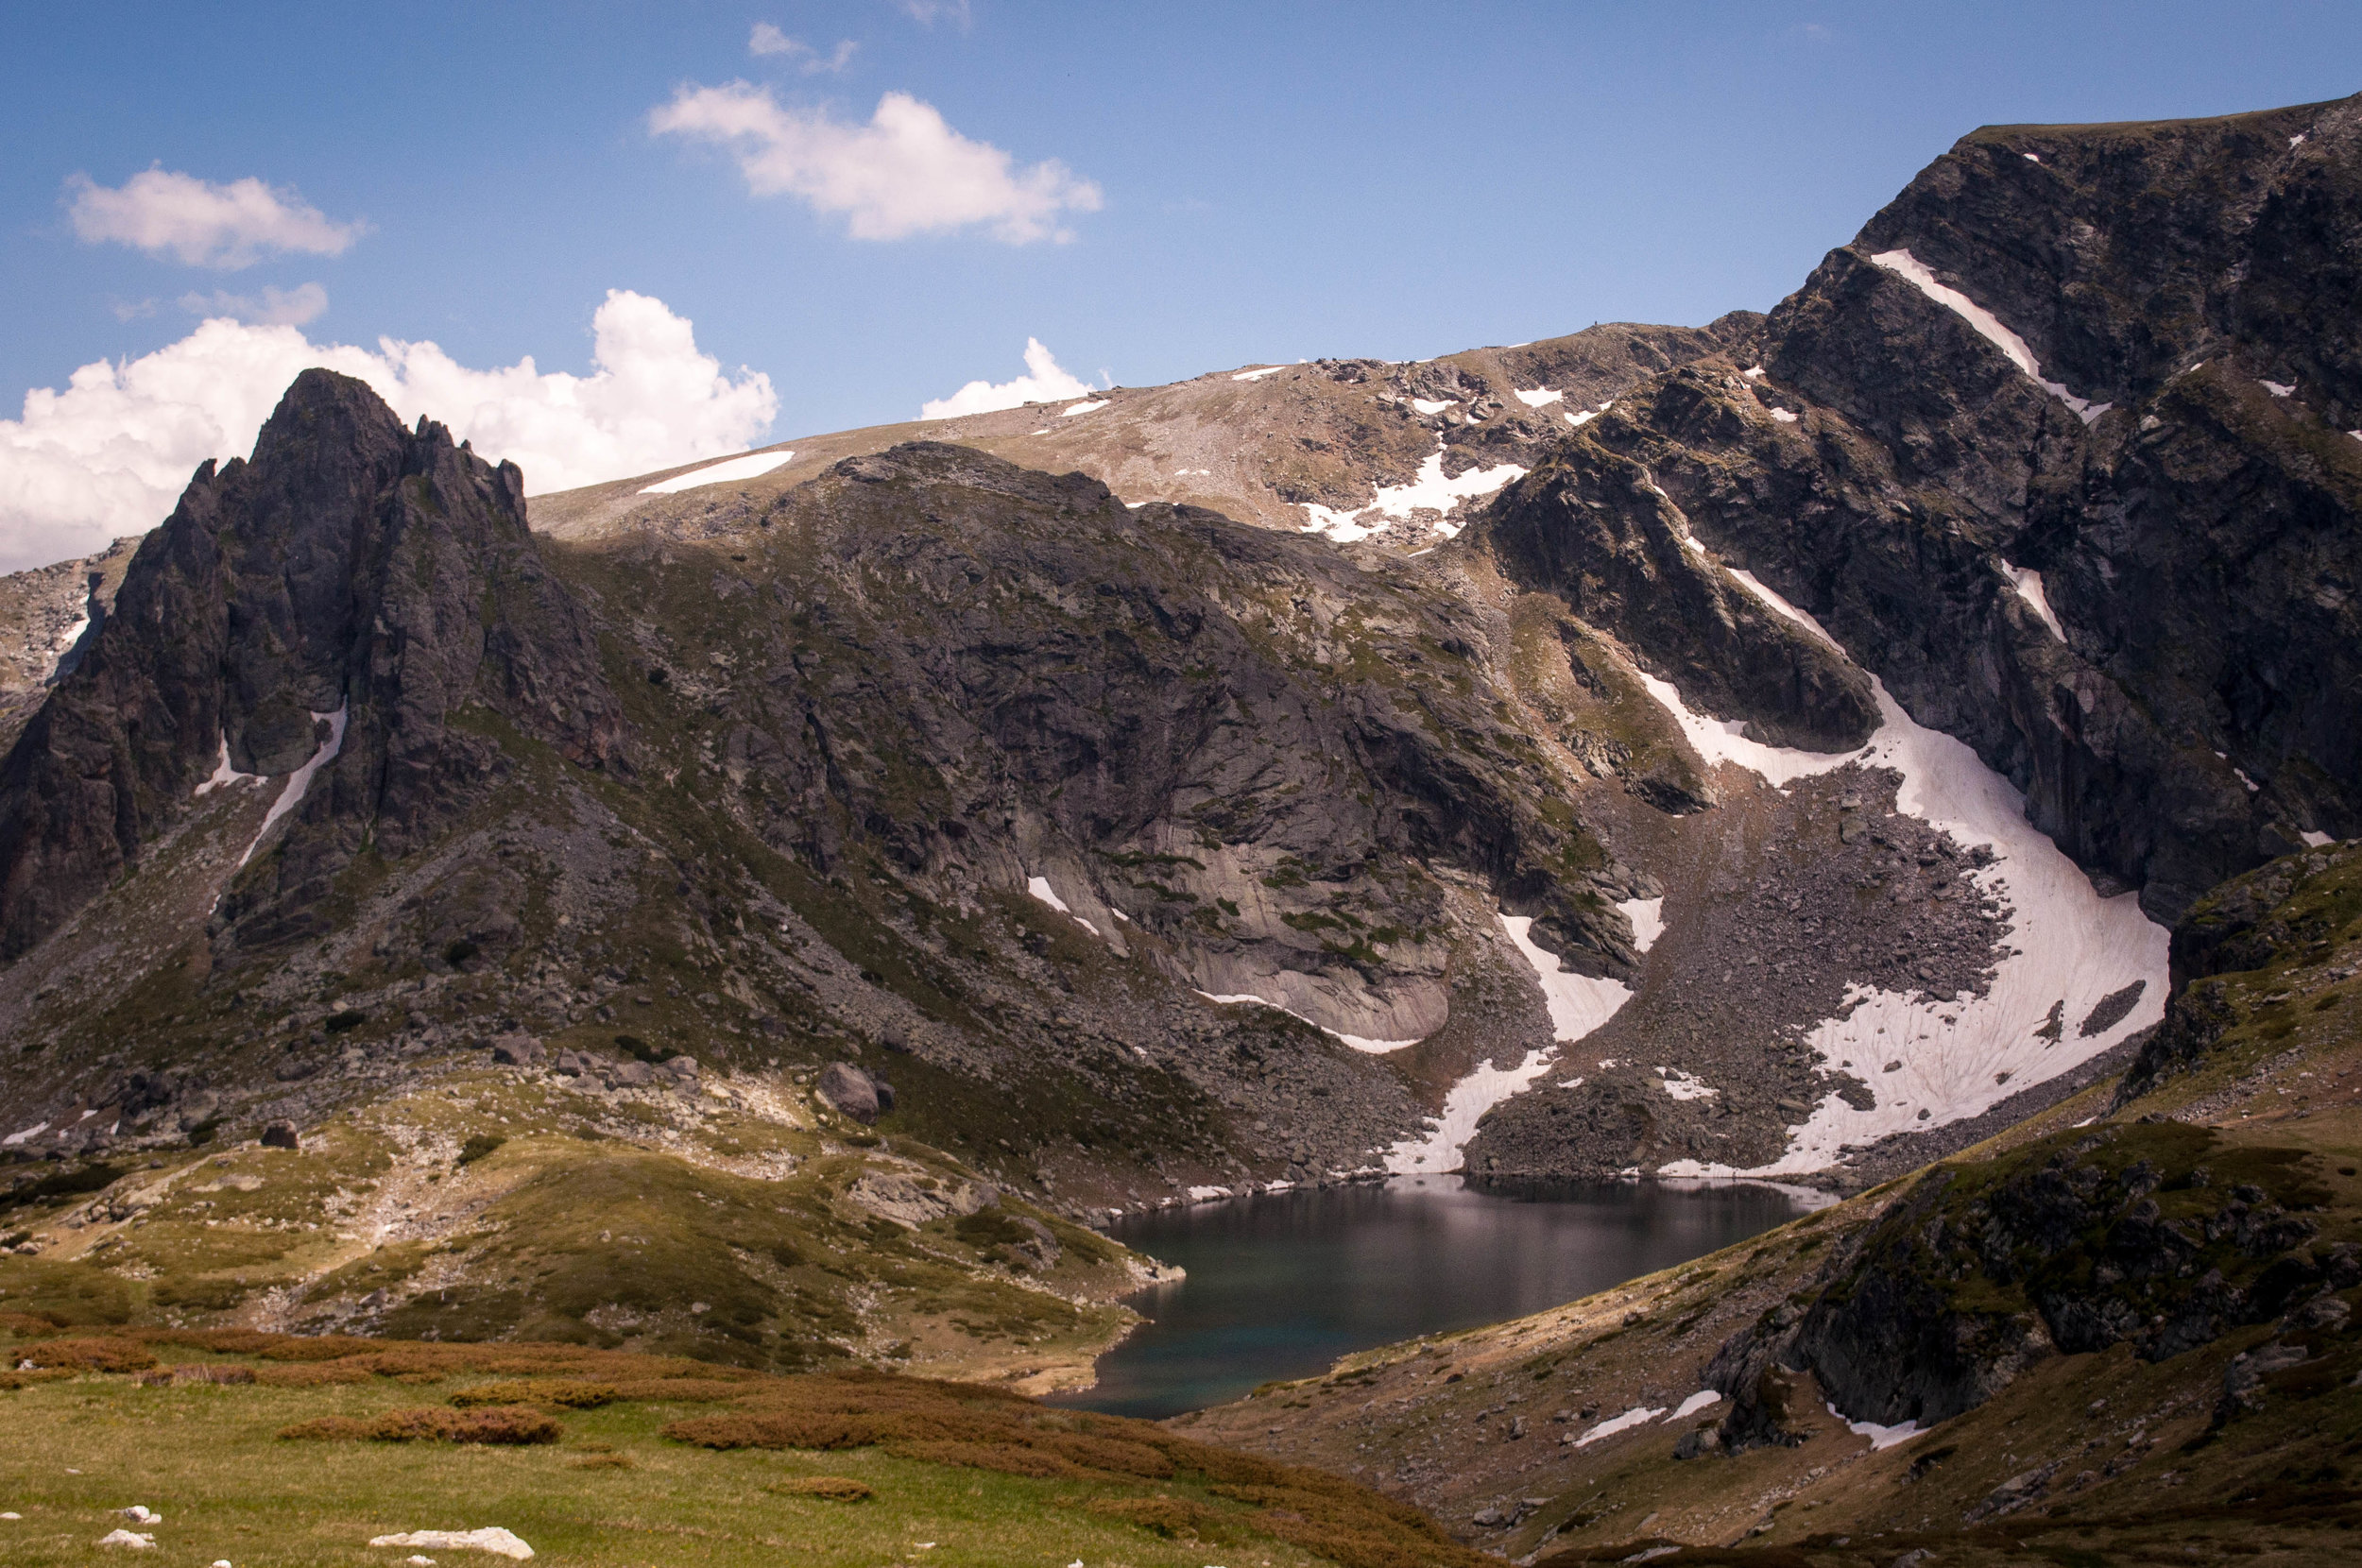 Seven Rila Lakes,  this was one of our stops in our Road trip in Bulgaria